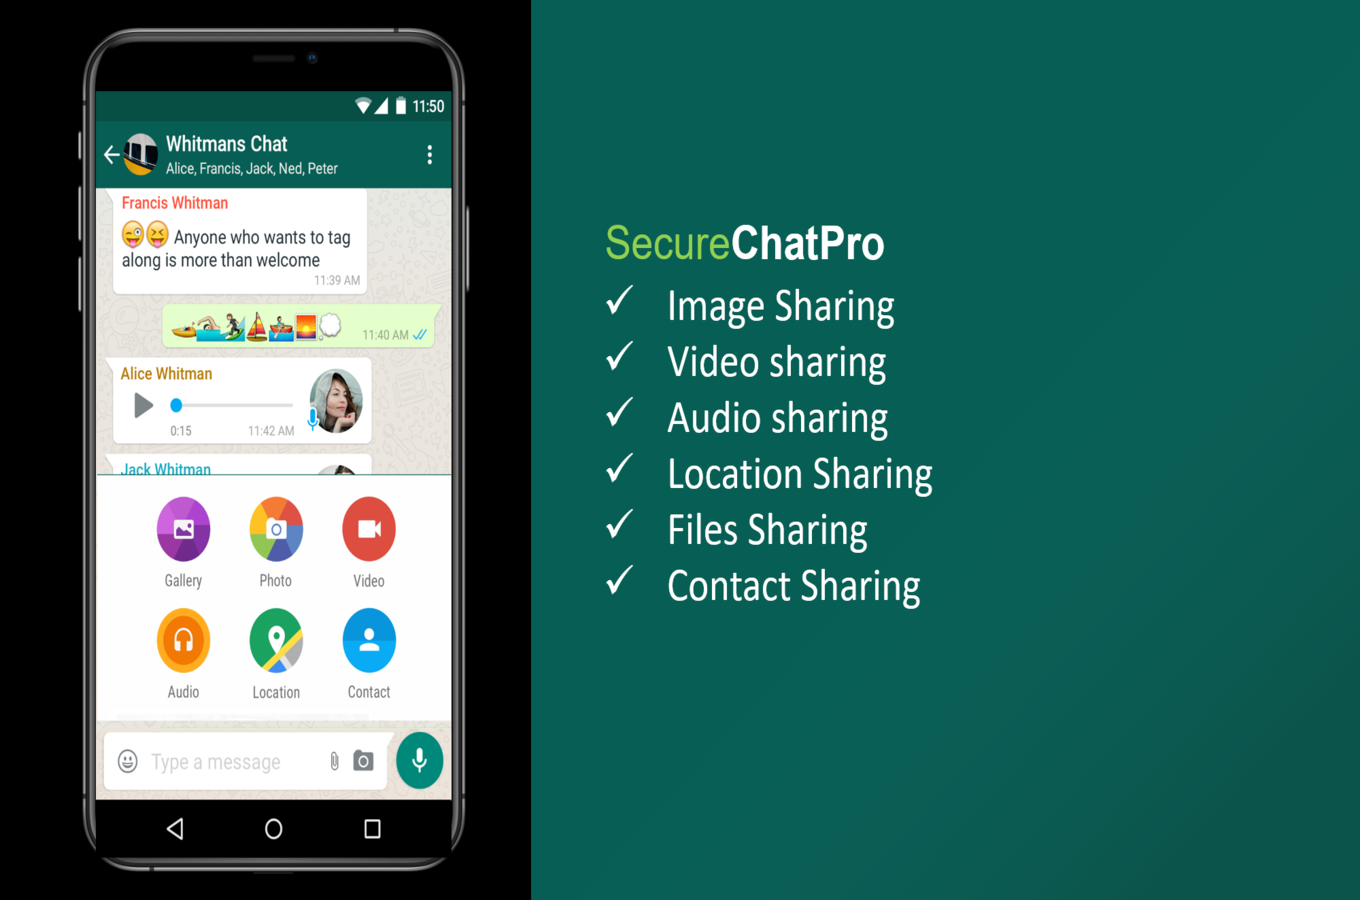 SecureChatPro - A Complete Whatsaap Clone - 5